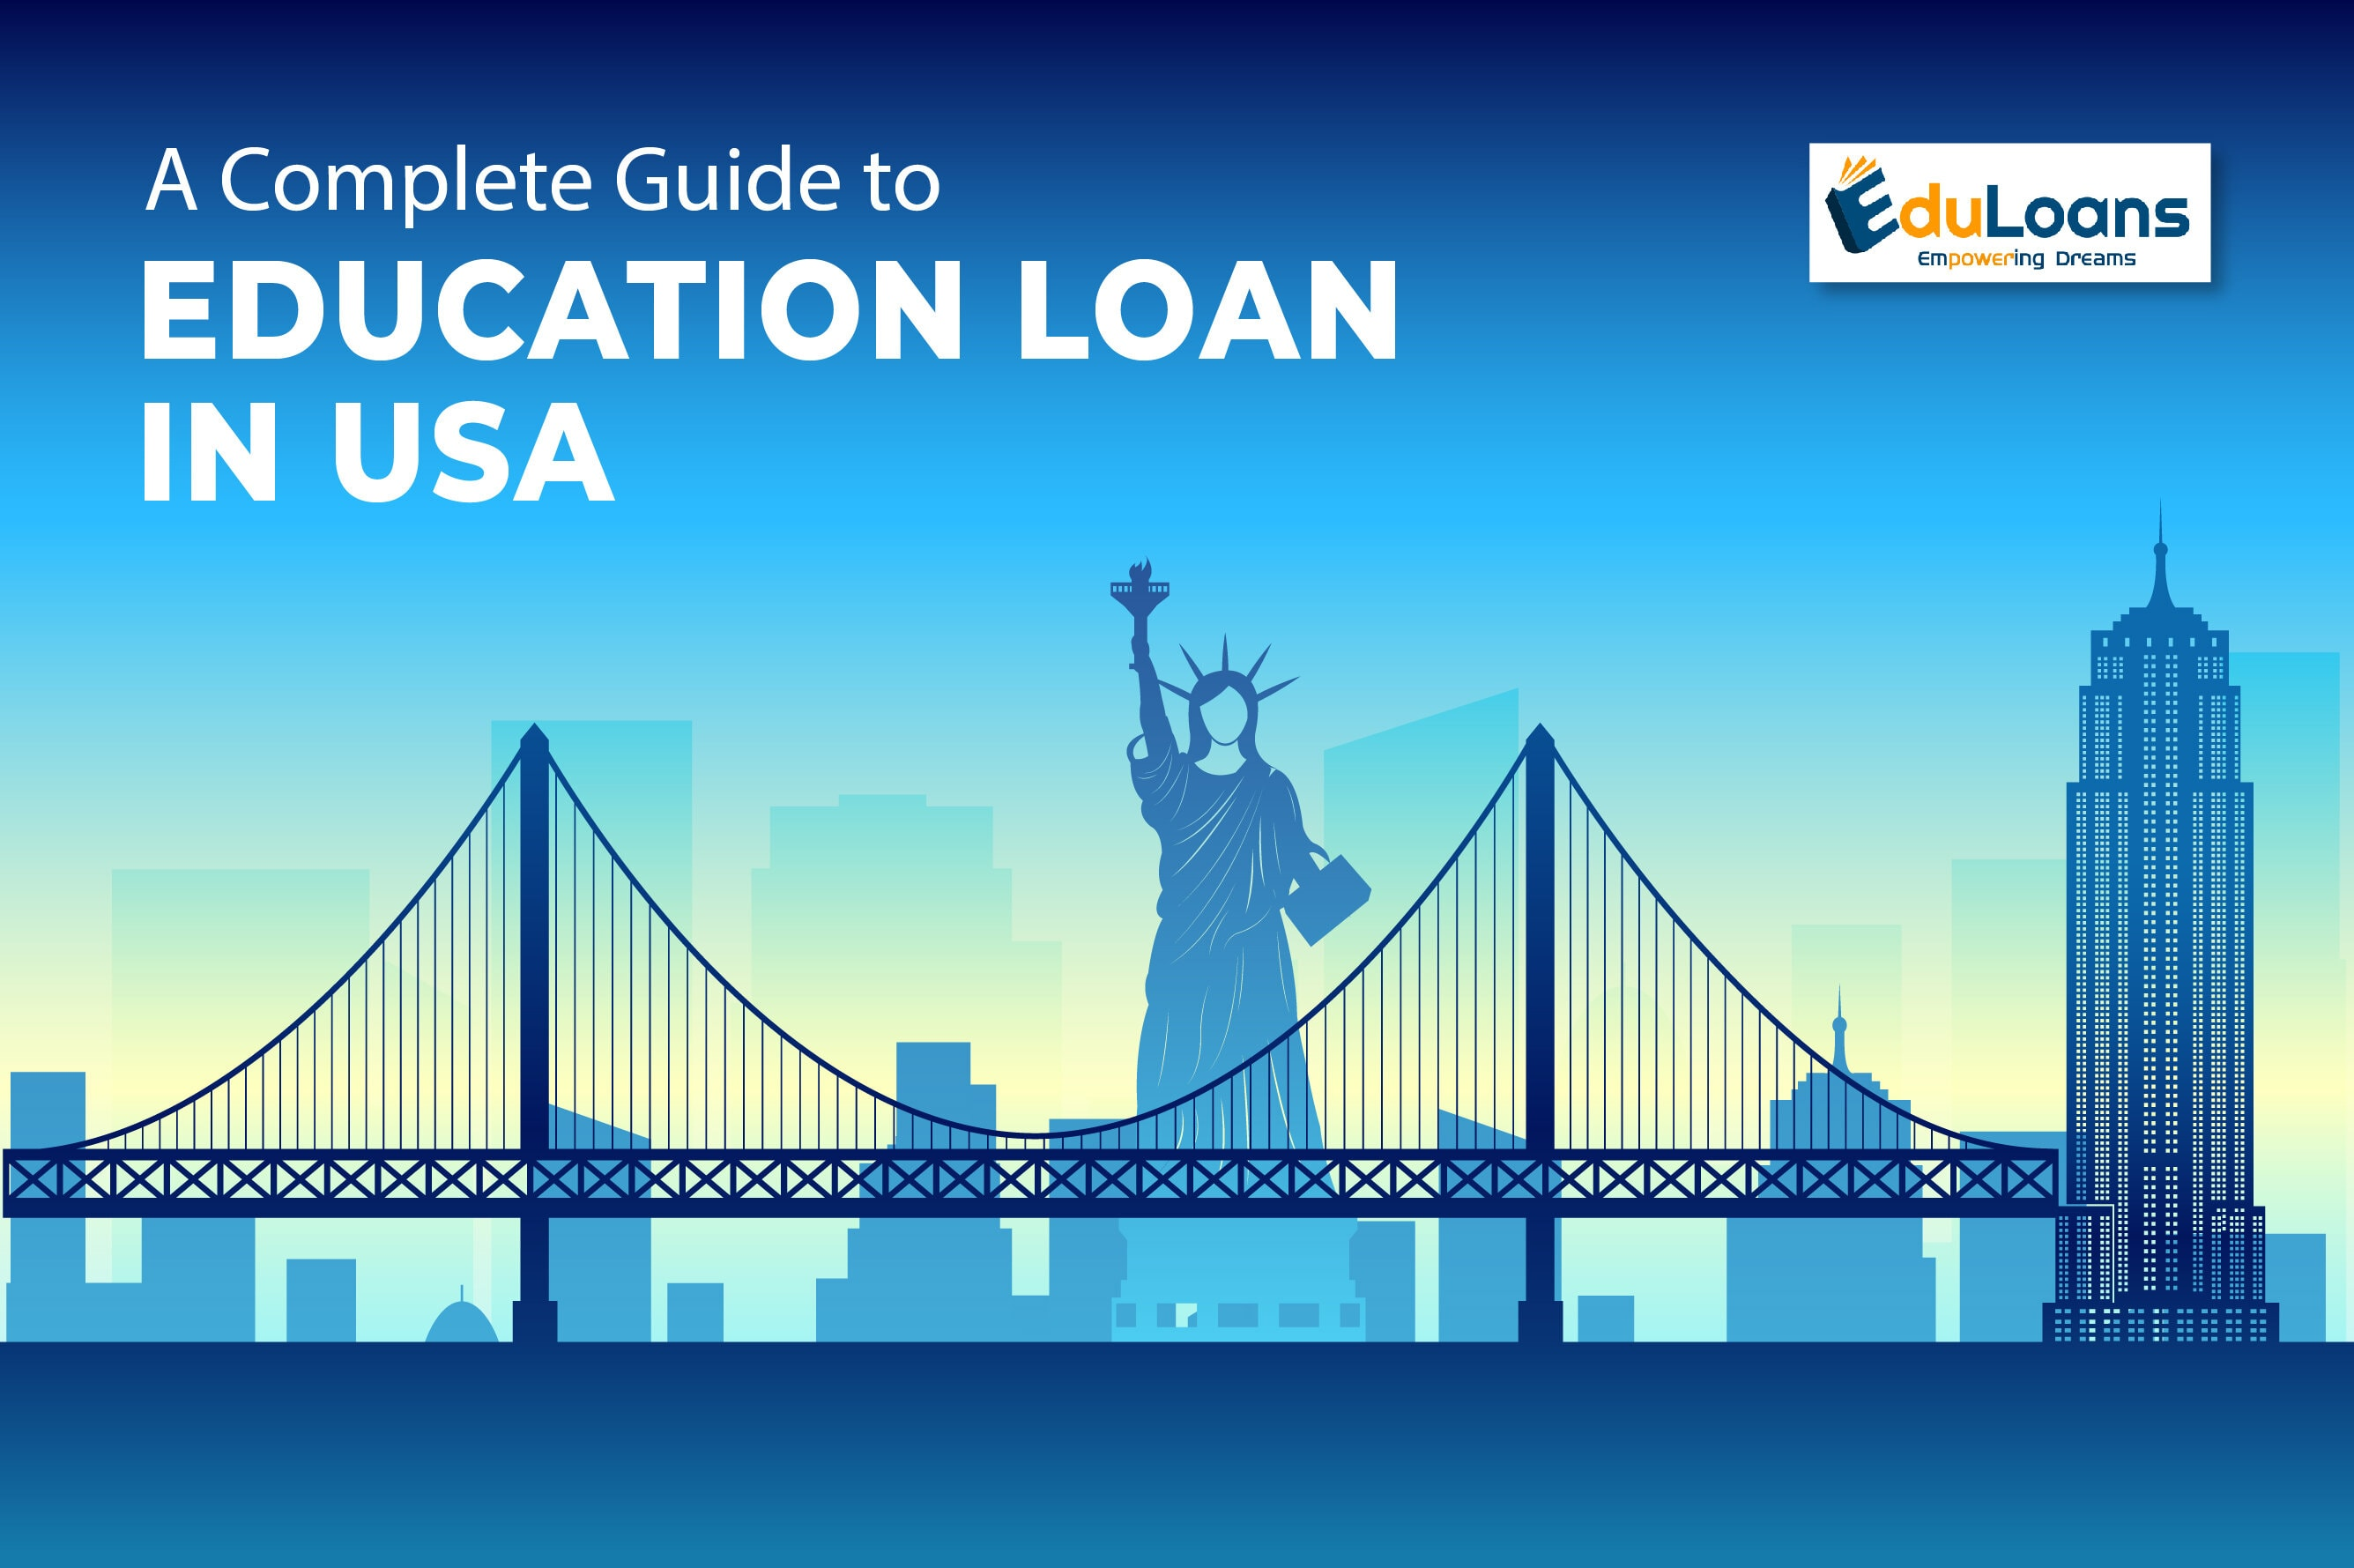 Why Study Abroad Education Loans are Better than Self-funding your Education Abroad?